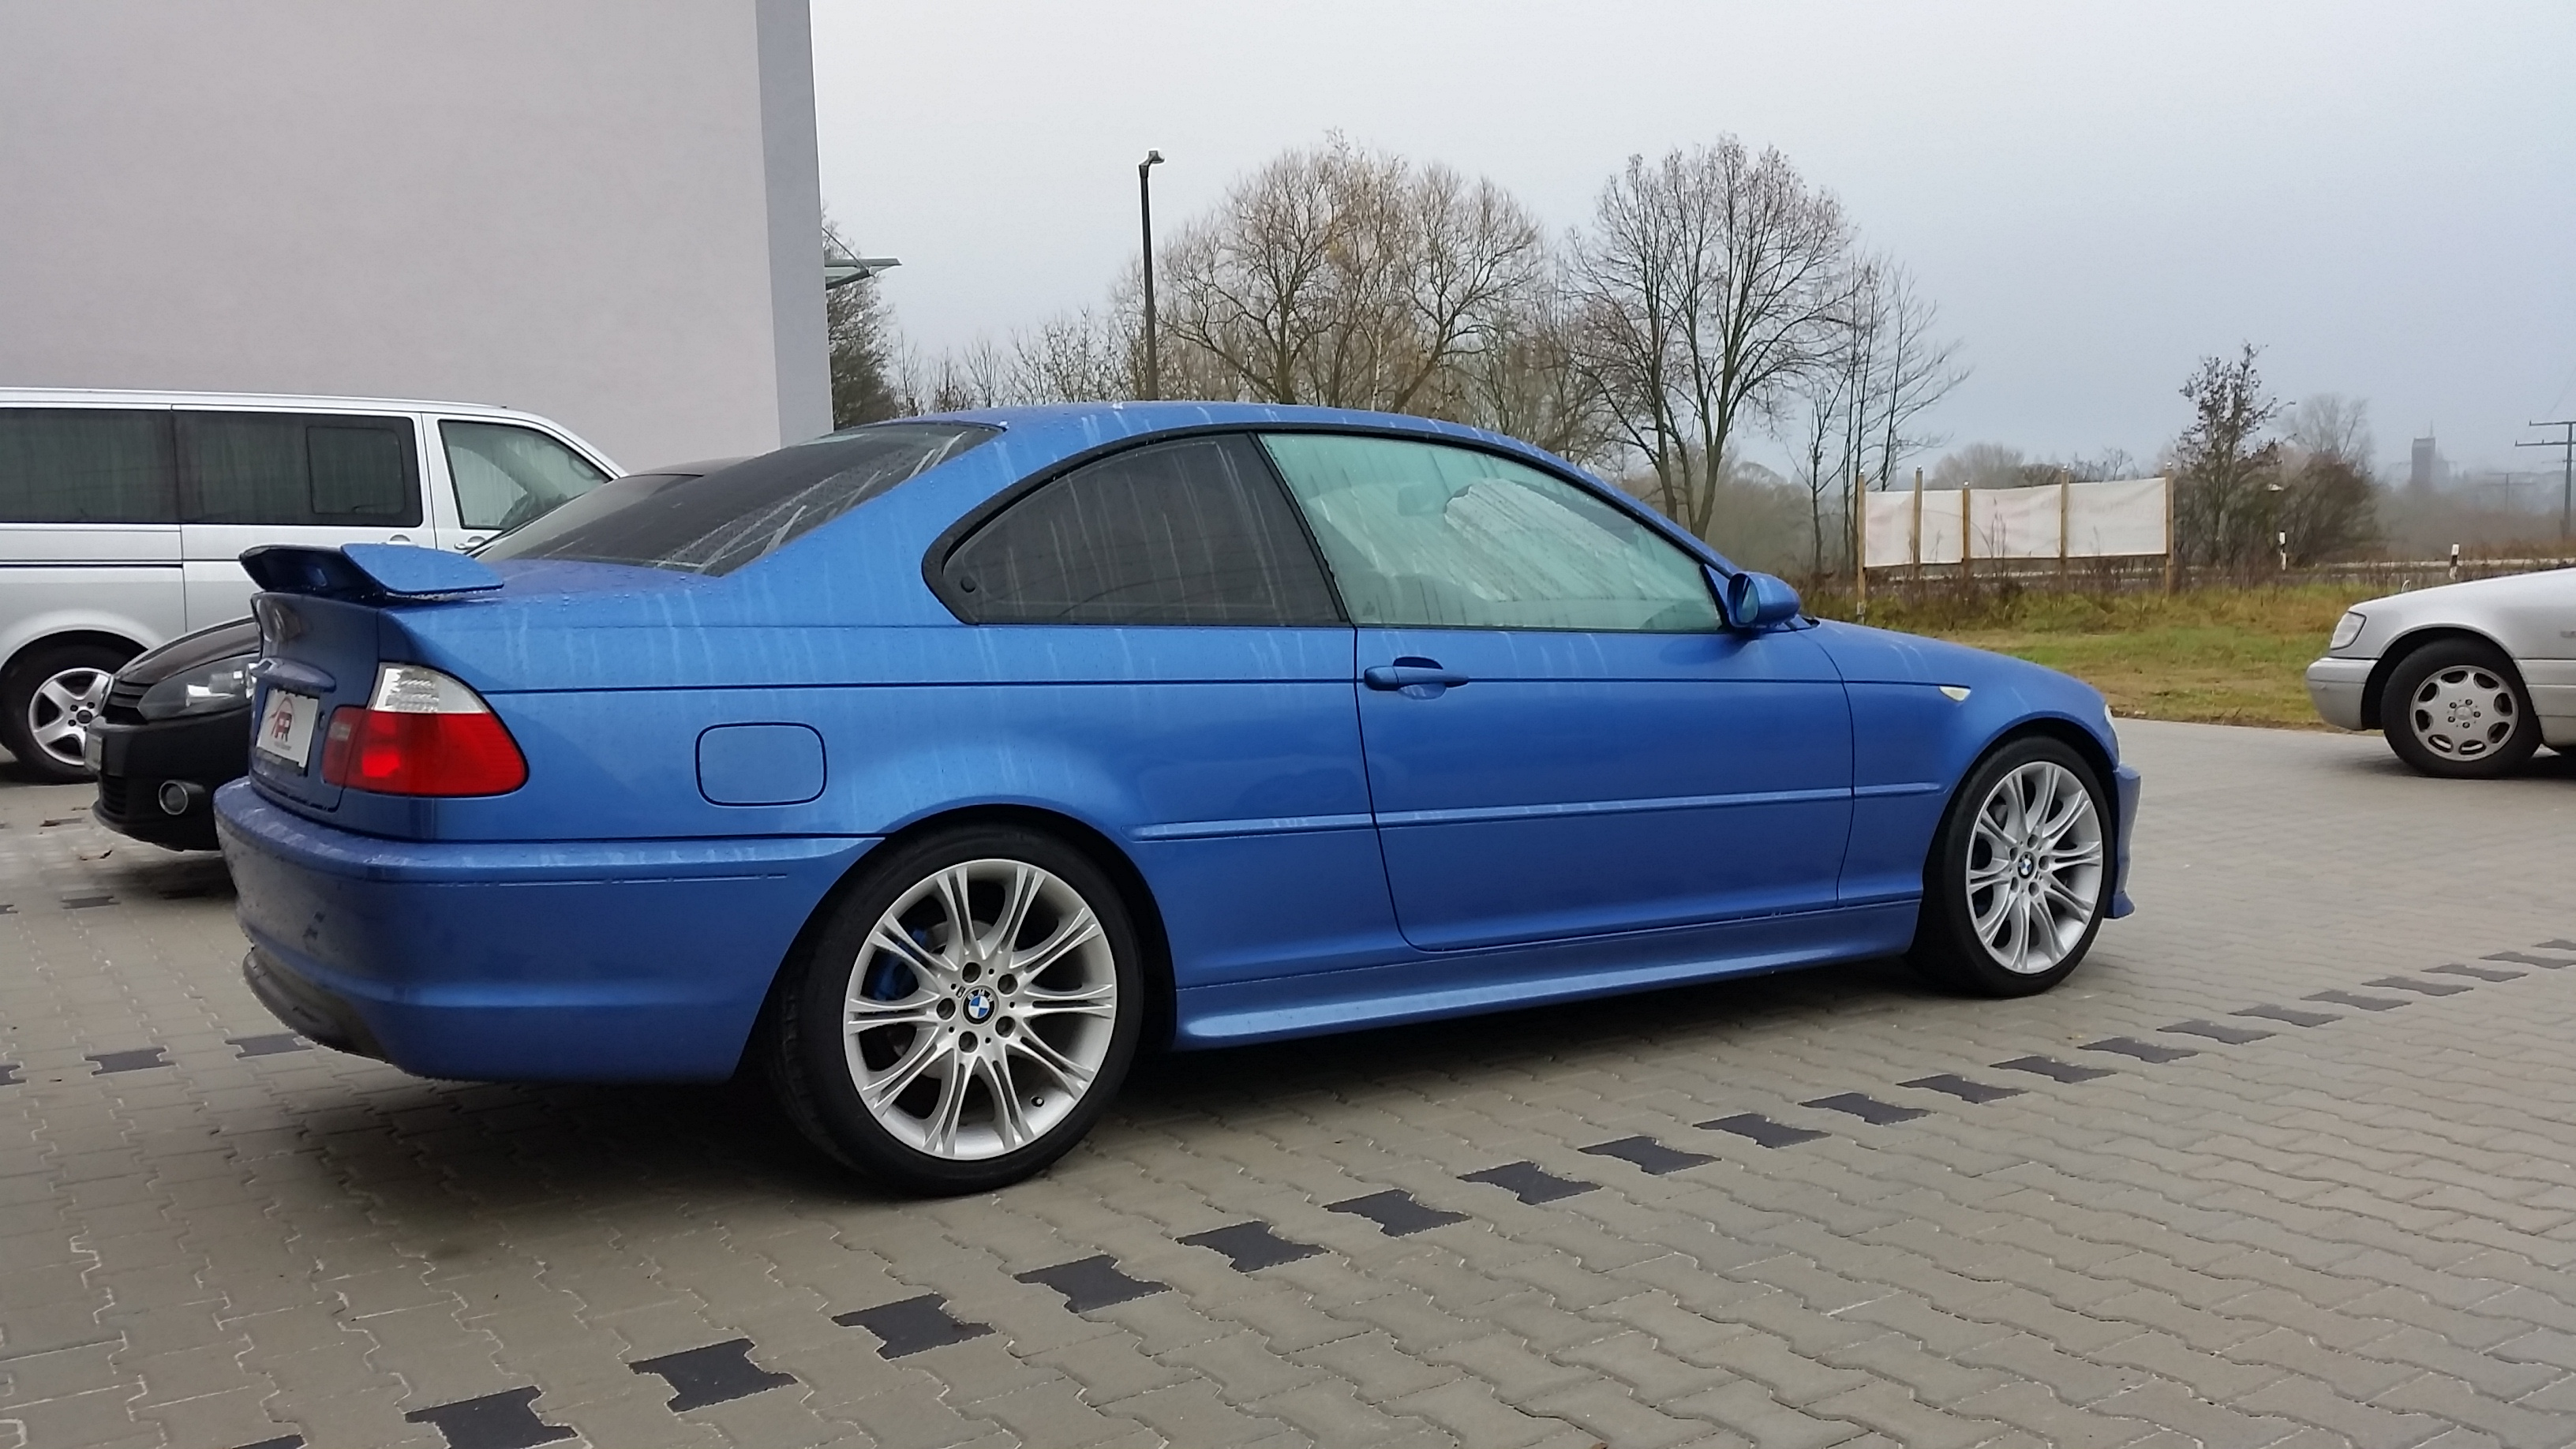 So I Just Bought My First Car It S A Bmw E46 320ci